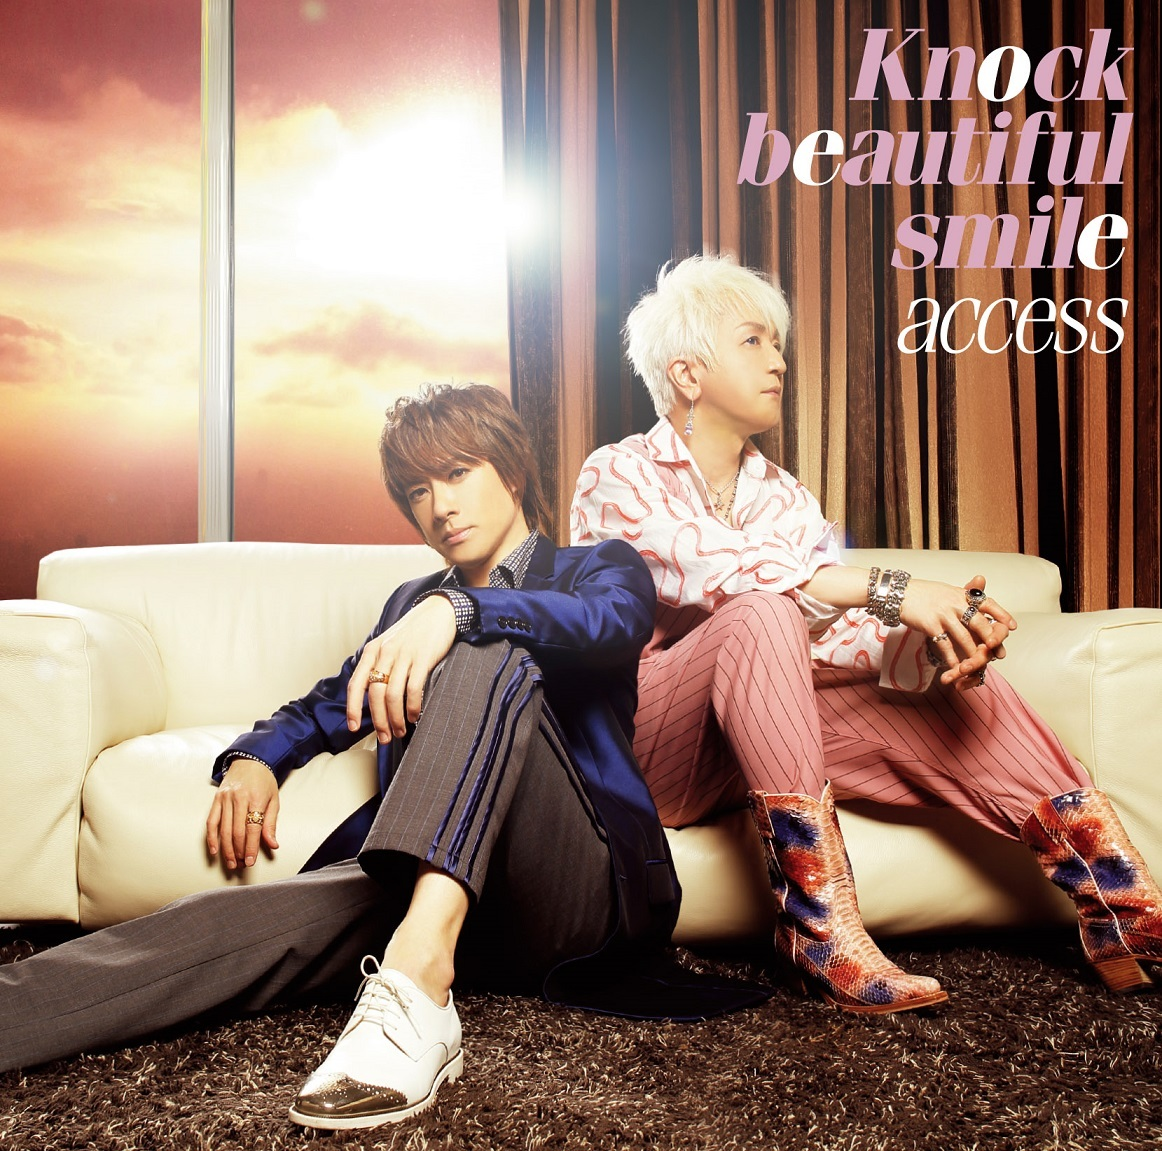 access「Knock beautiful smile」通常盤B